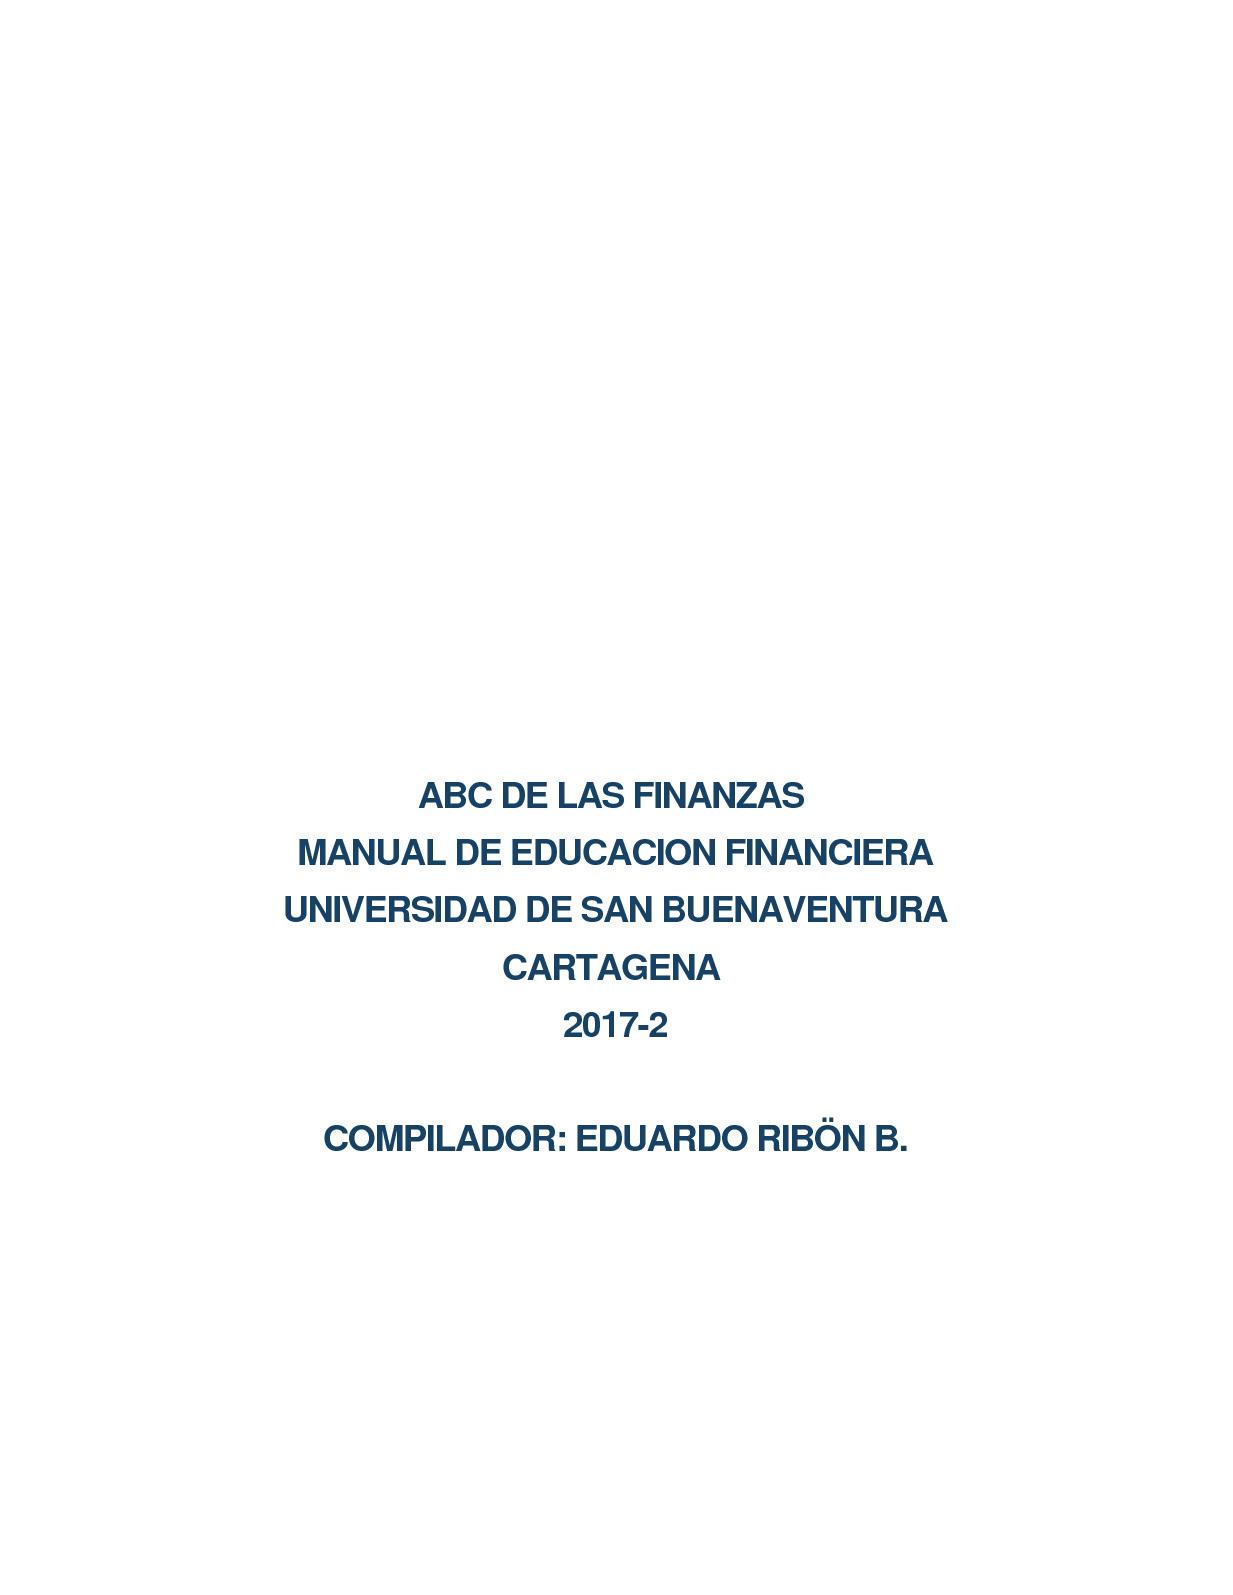 Manual Educacion Financiera Abc De Las Finanzas